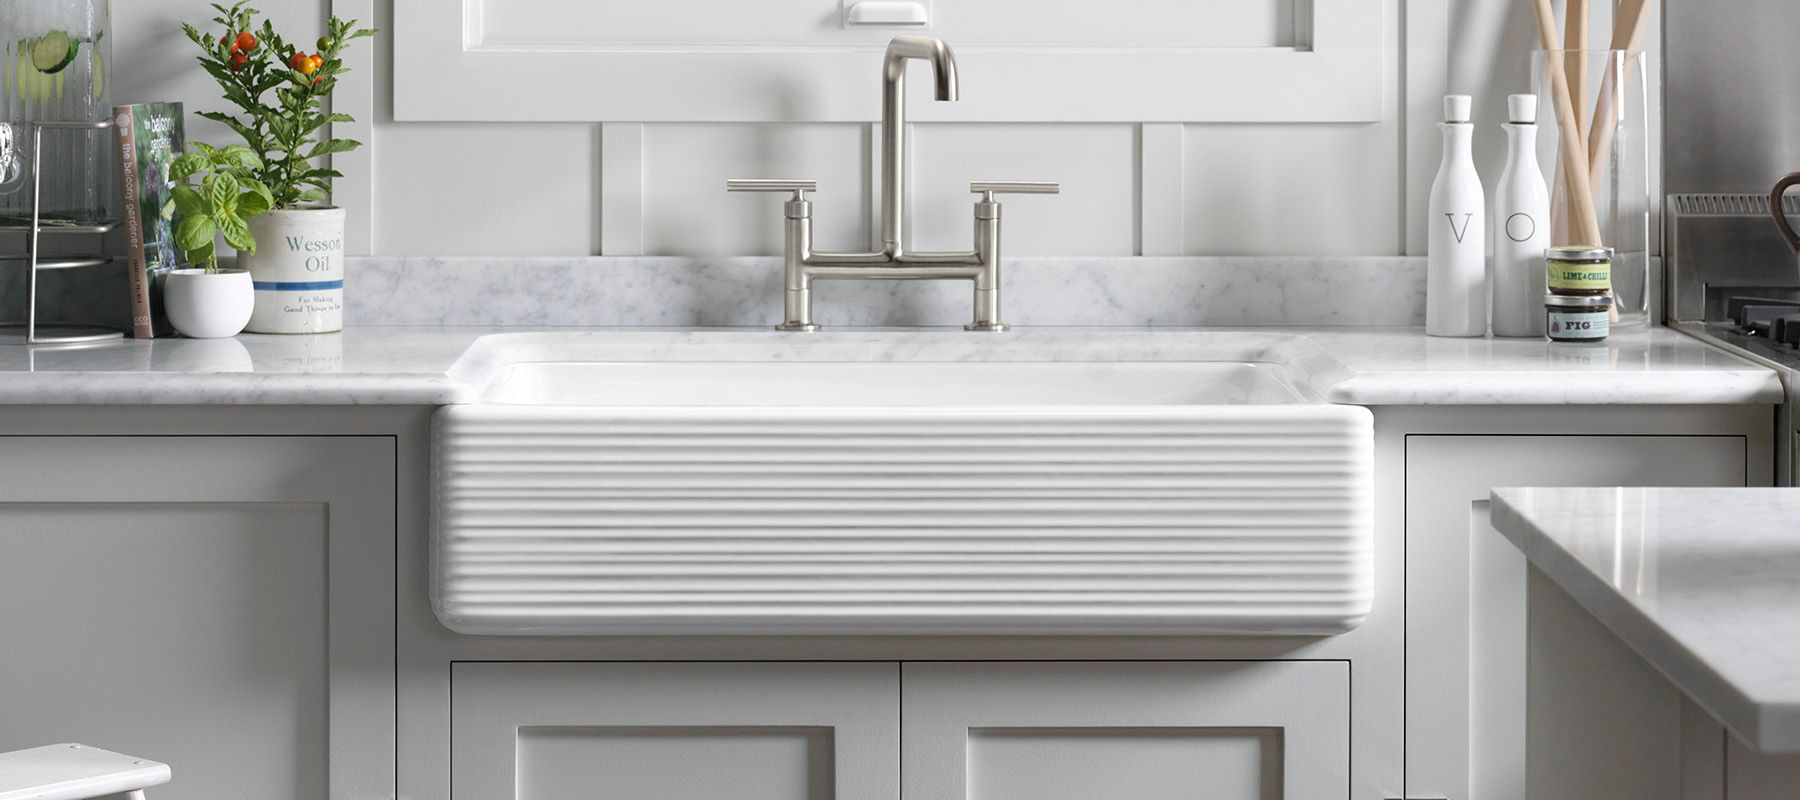 White Undermount Kitchen Sinks Interesting Undermount Kitchen Sinks  Kitchen  Kohler Design Decoration